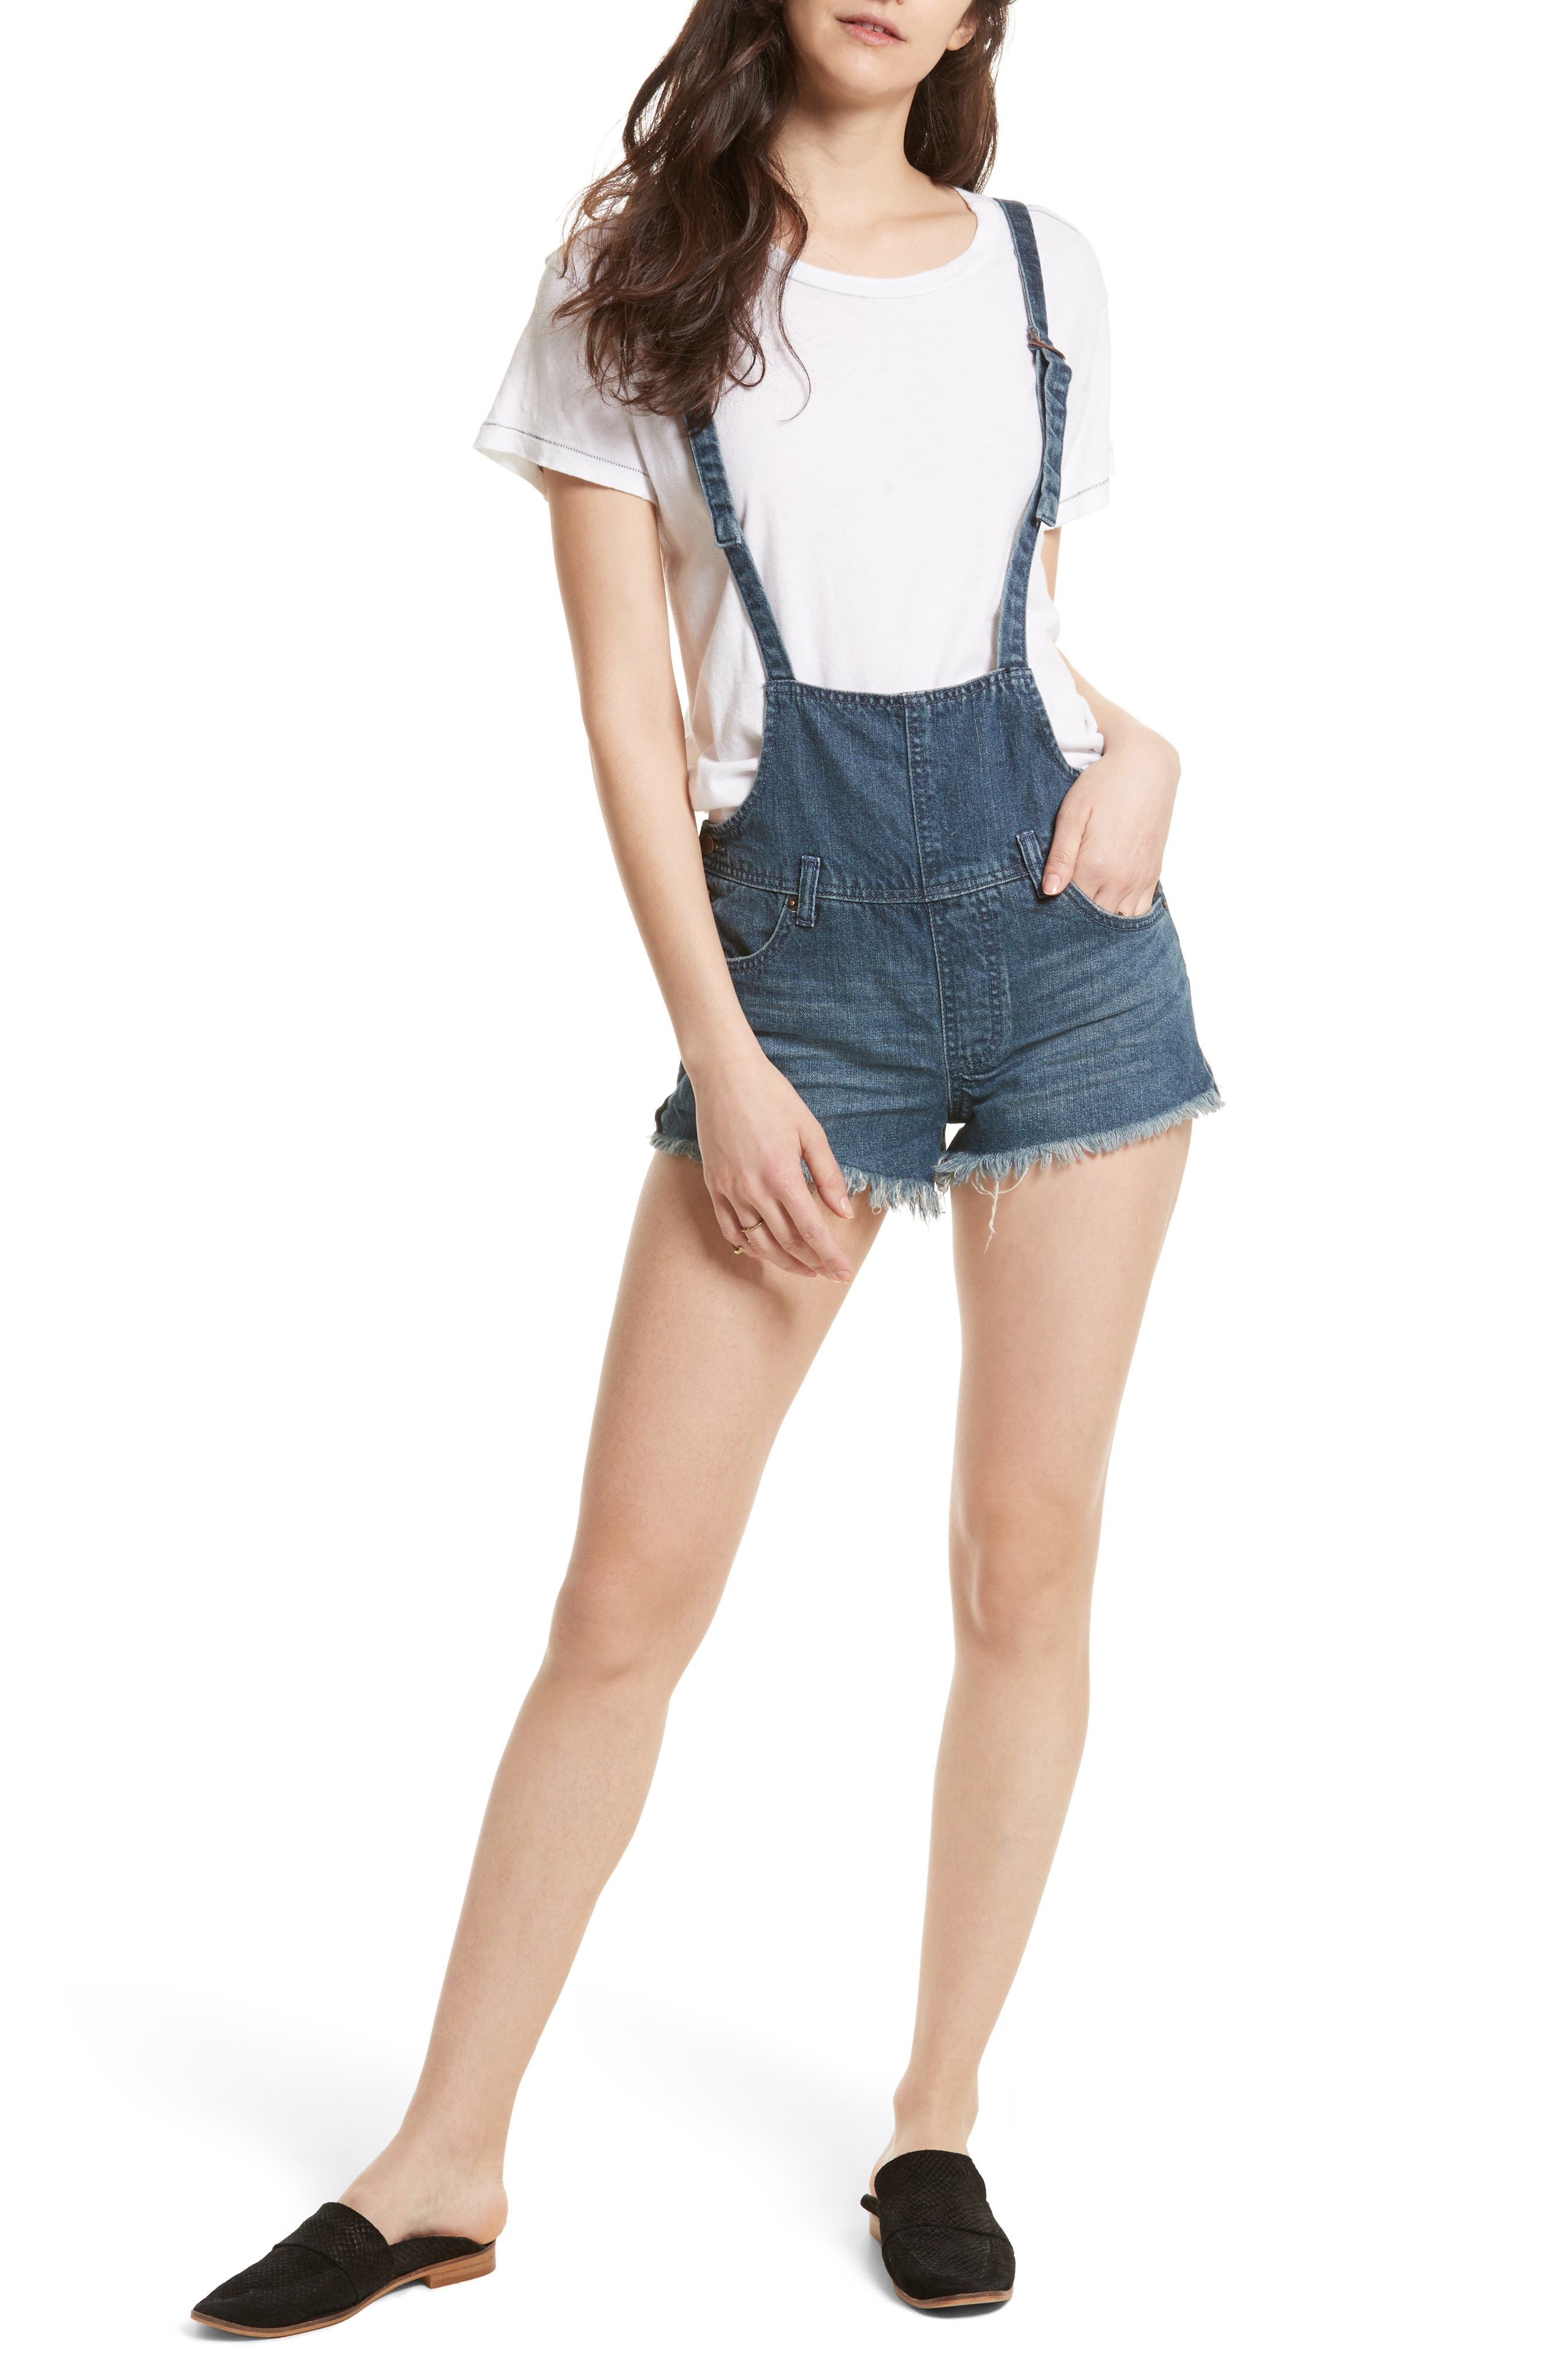 Main Image - Free People Strappy Denim Short Overalls